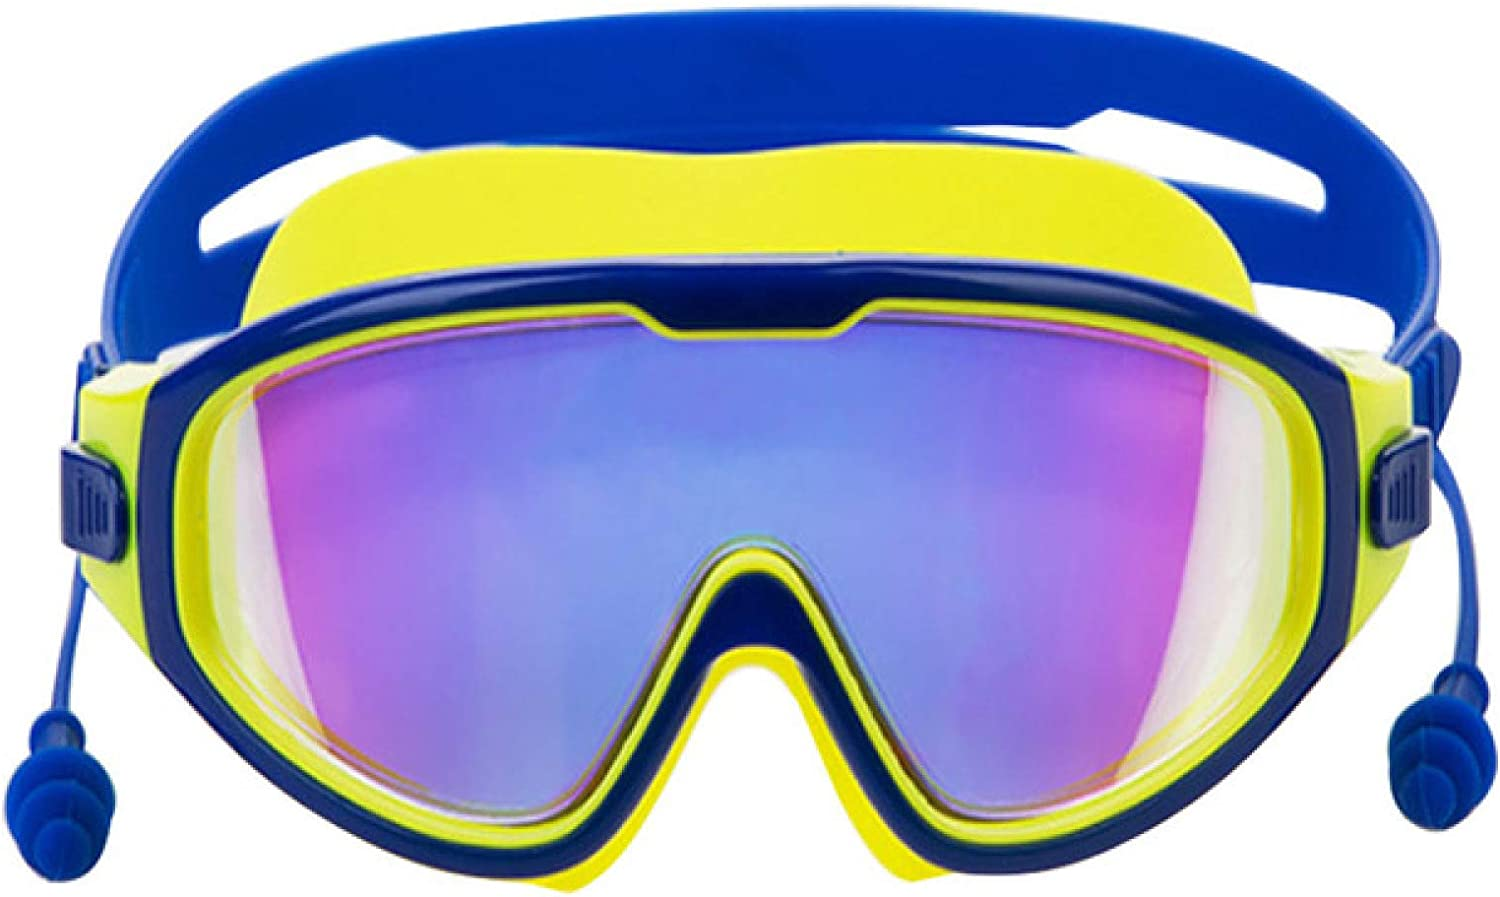 Aiong Swimming Goggles Glasses Earplug Special sale Year-end gift item Gir Boy Children